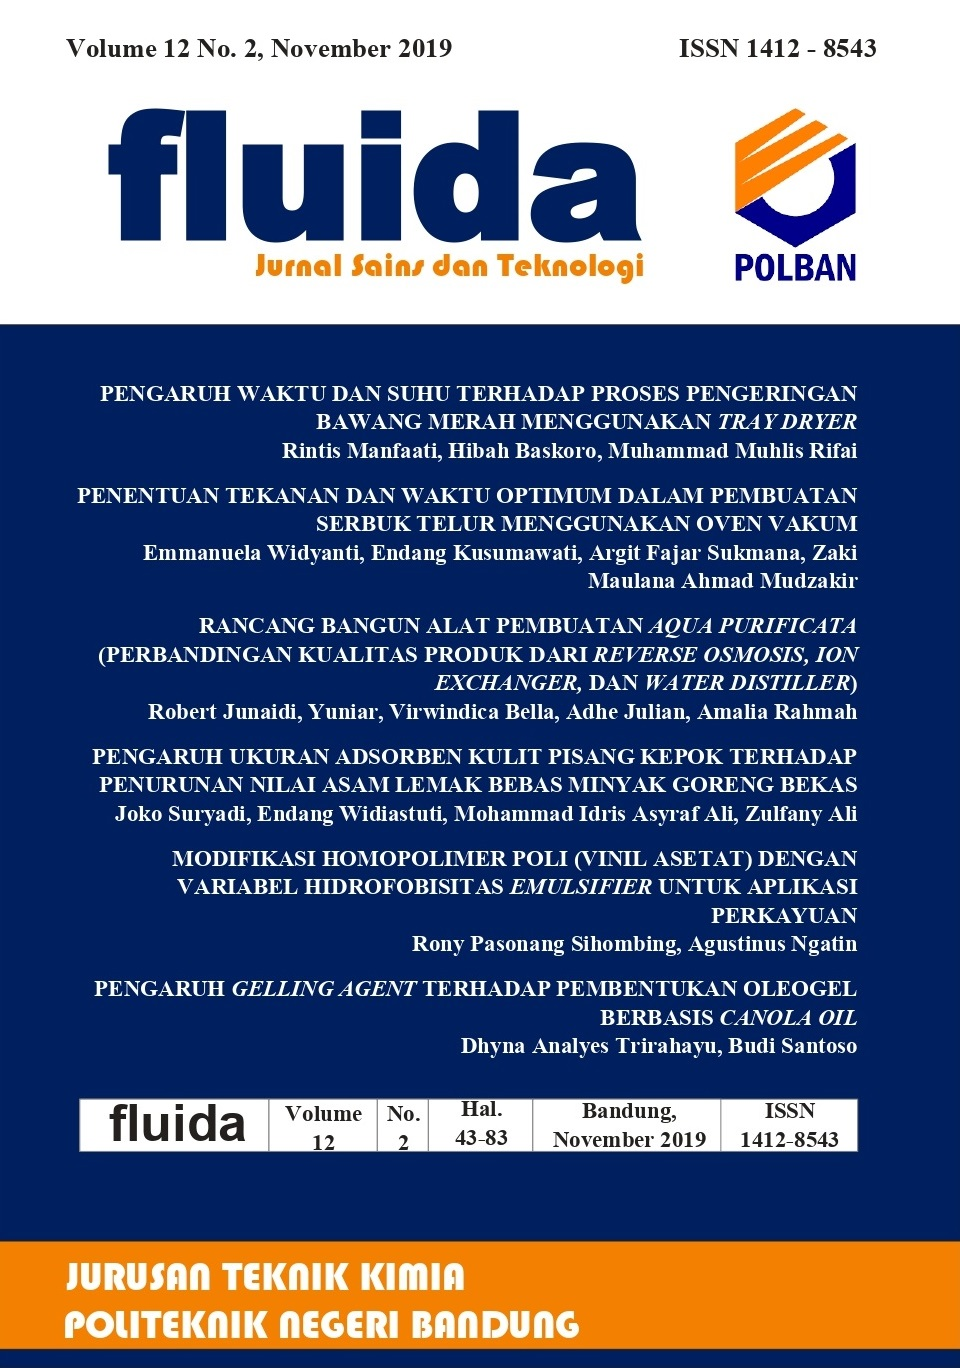 FLUIDA: Jurnal Sains dan Teknologi Volume 12 No. 2, November 2019